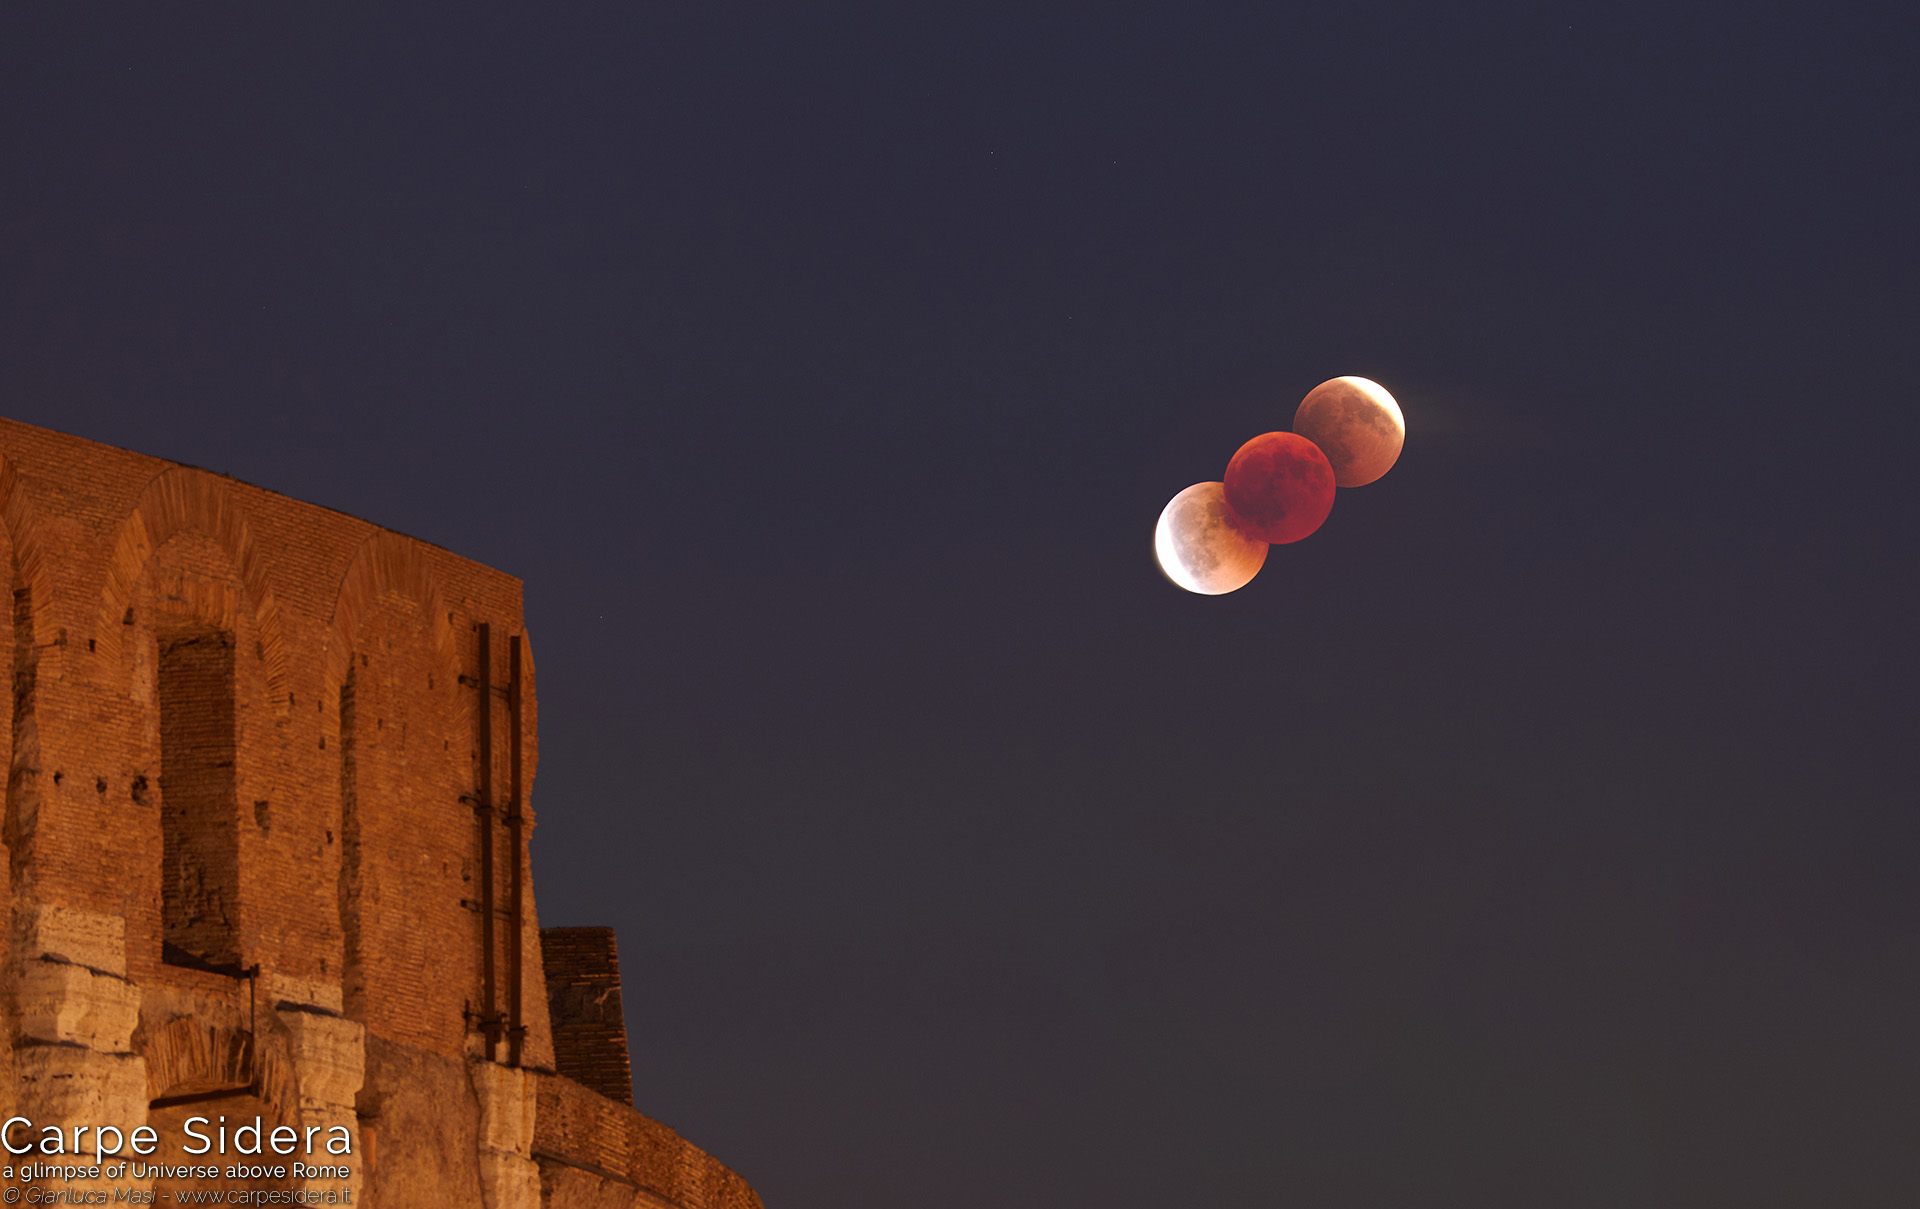 5. The 27 July 2018 total lunar eclipse beside the Colosseum.